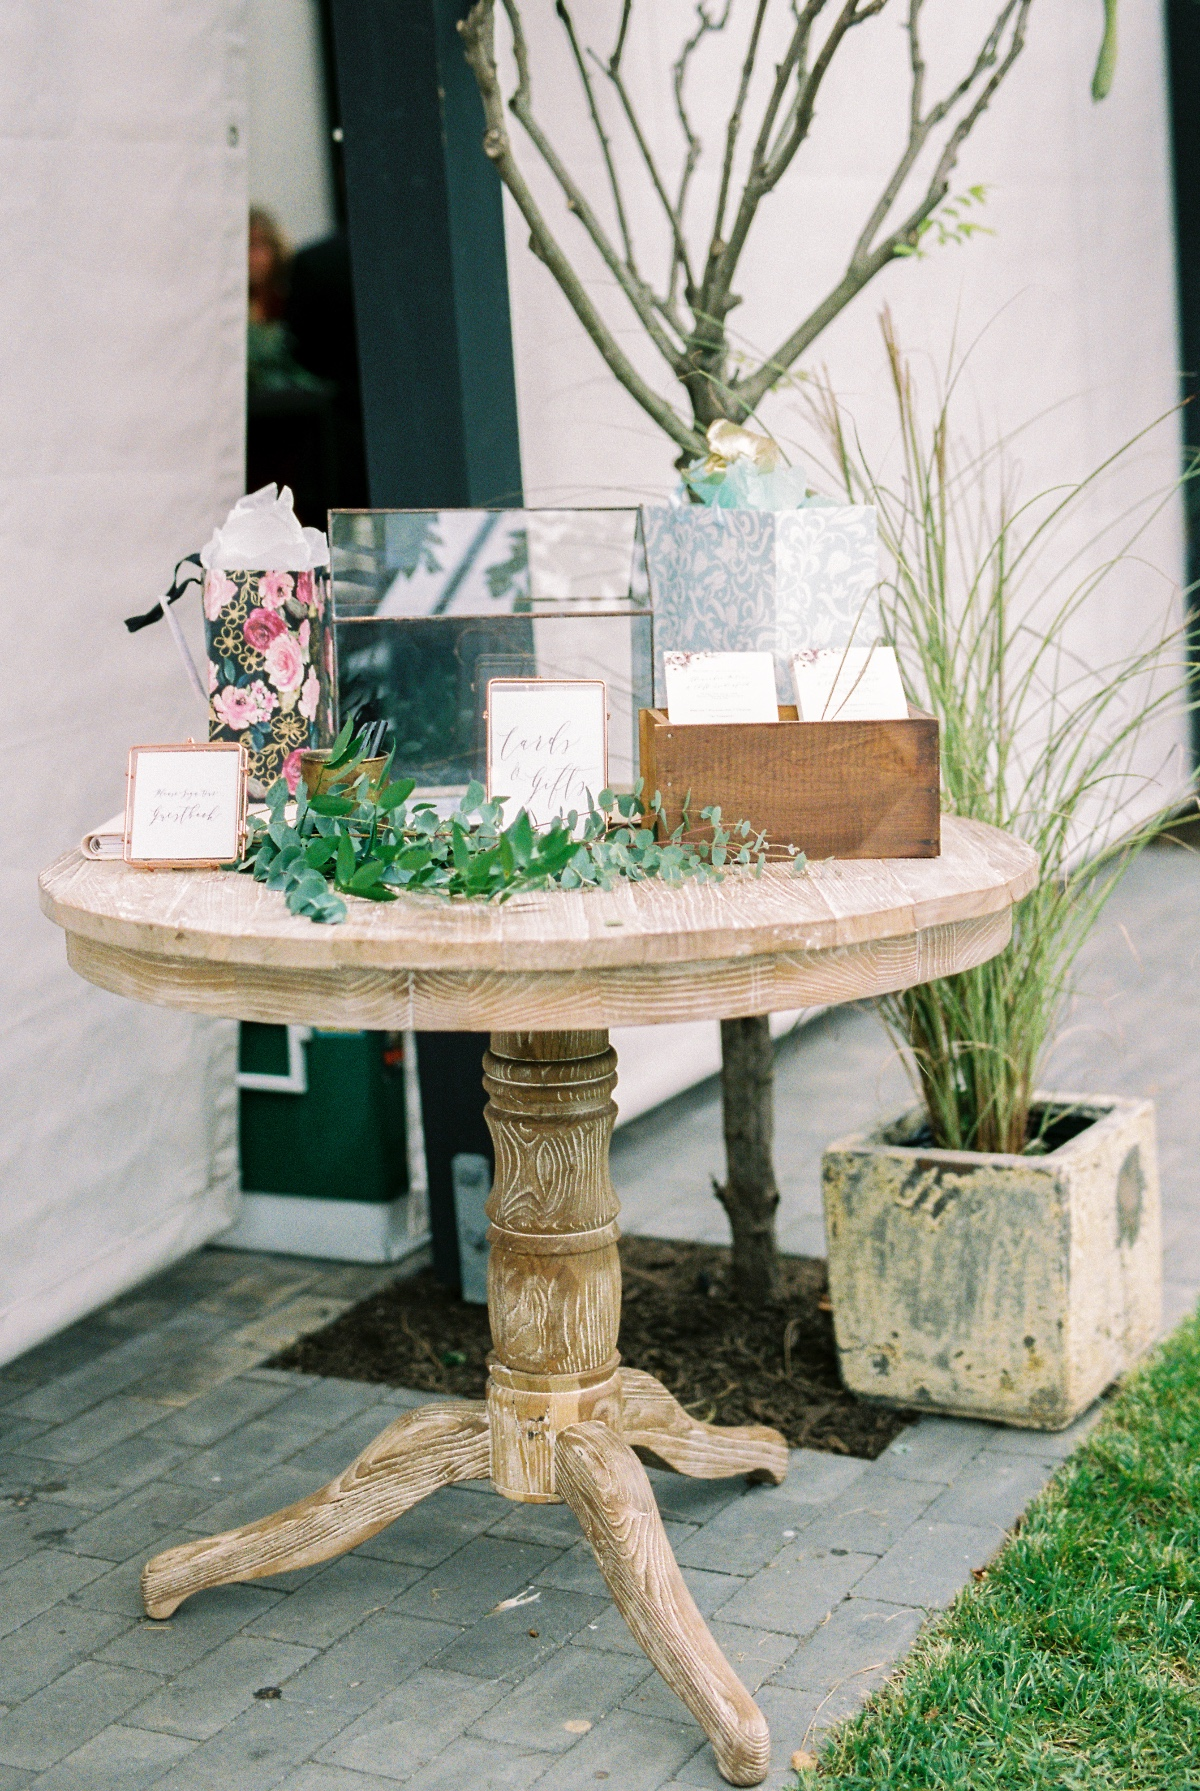 Chic card table